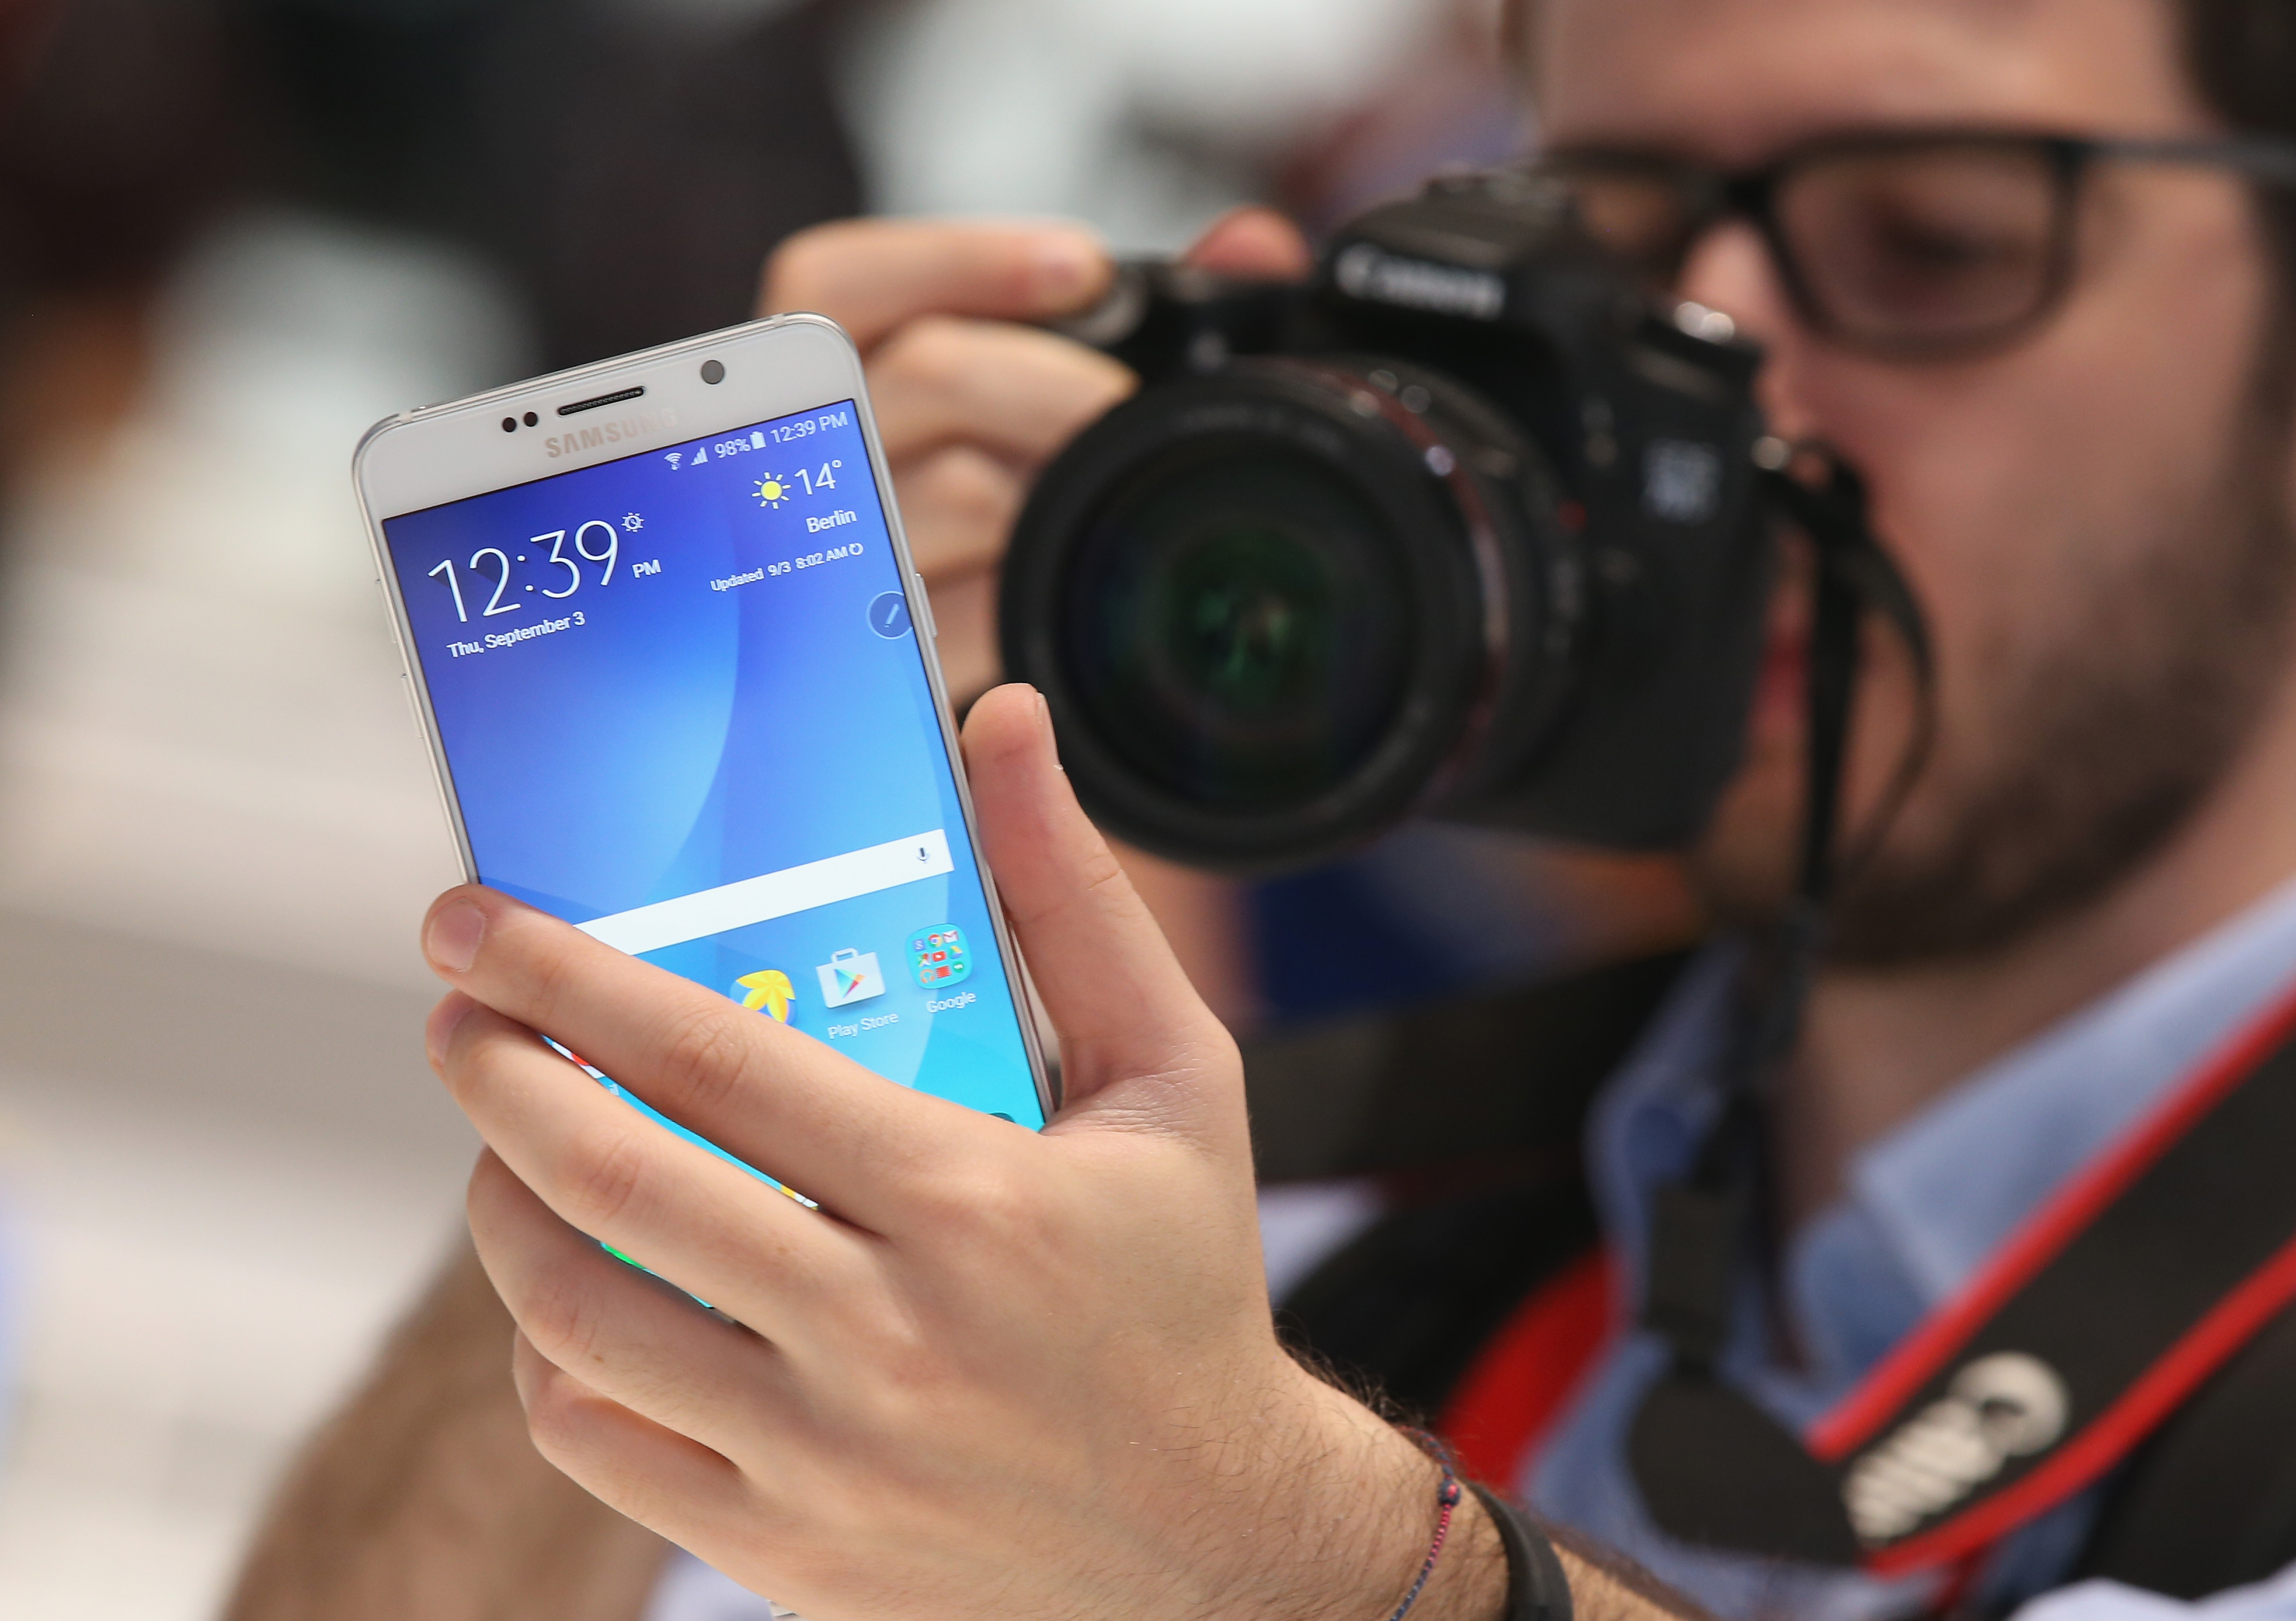 A visitor looks at a Galaxy Note 5 smartphone at the Samsung stand during a press day at the 2015 IFA consumer electronics and appliances trade fair on September 3, 2015 in Berlin, Germany.